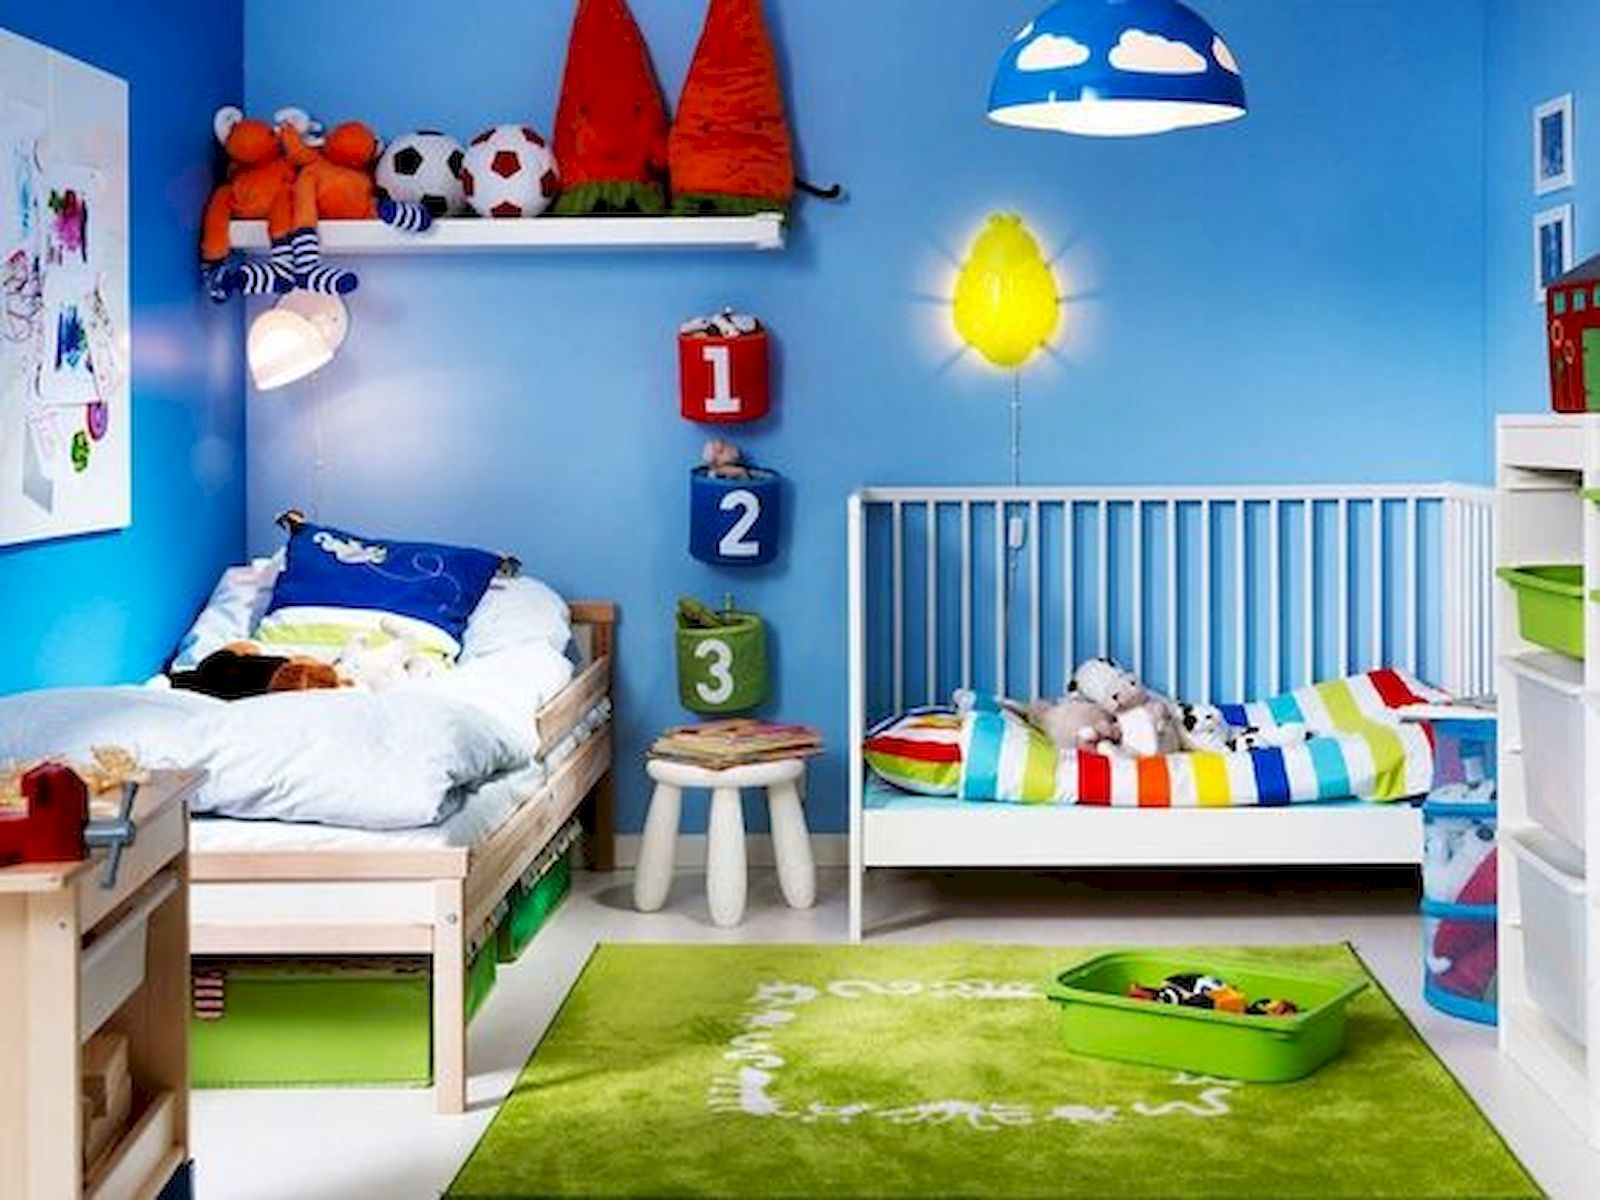 30 Creative Kids Bedroom Design and Decor Ideas That Make Your Children Comfortable (1)